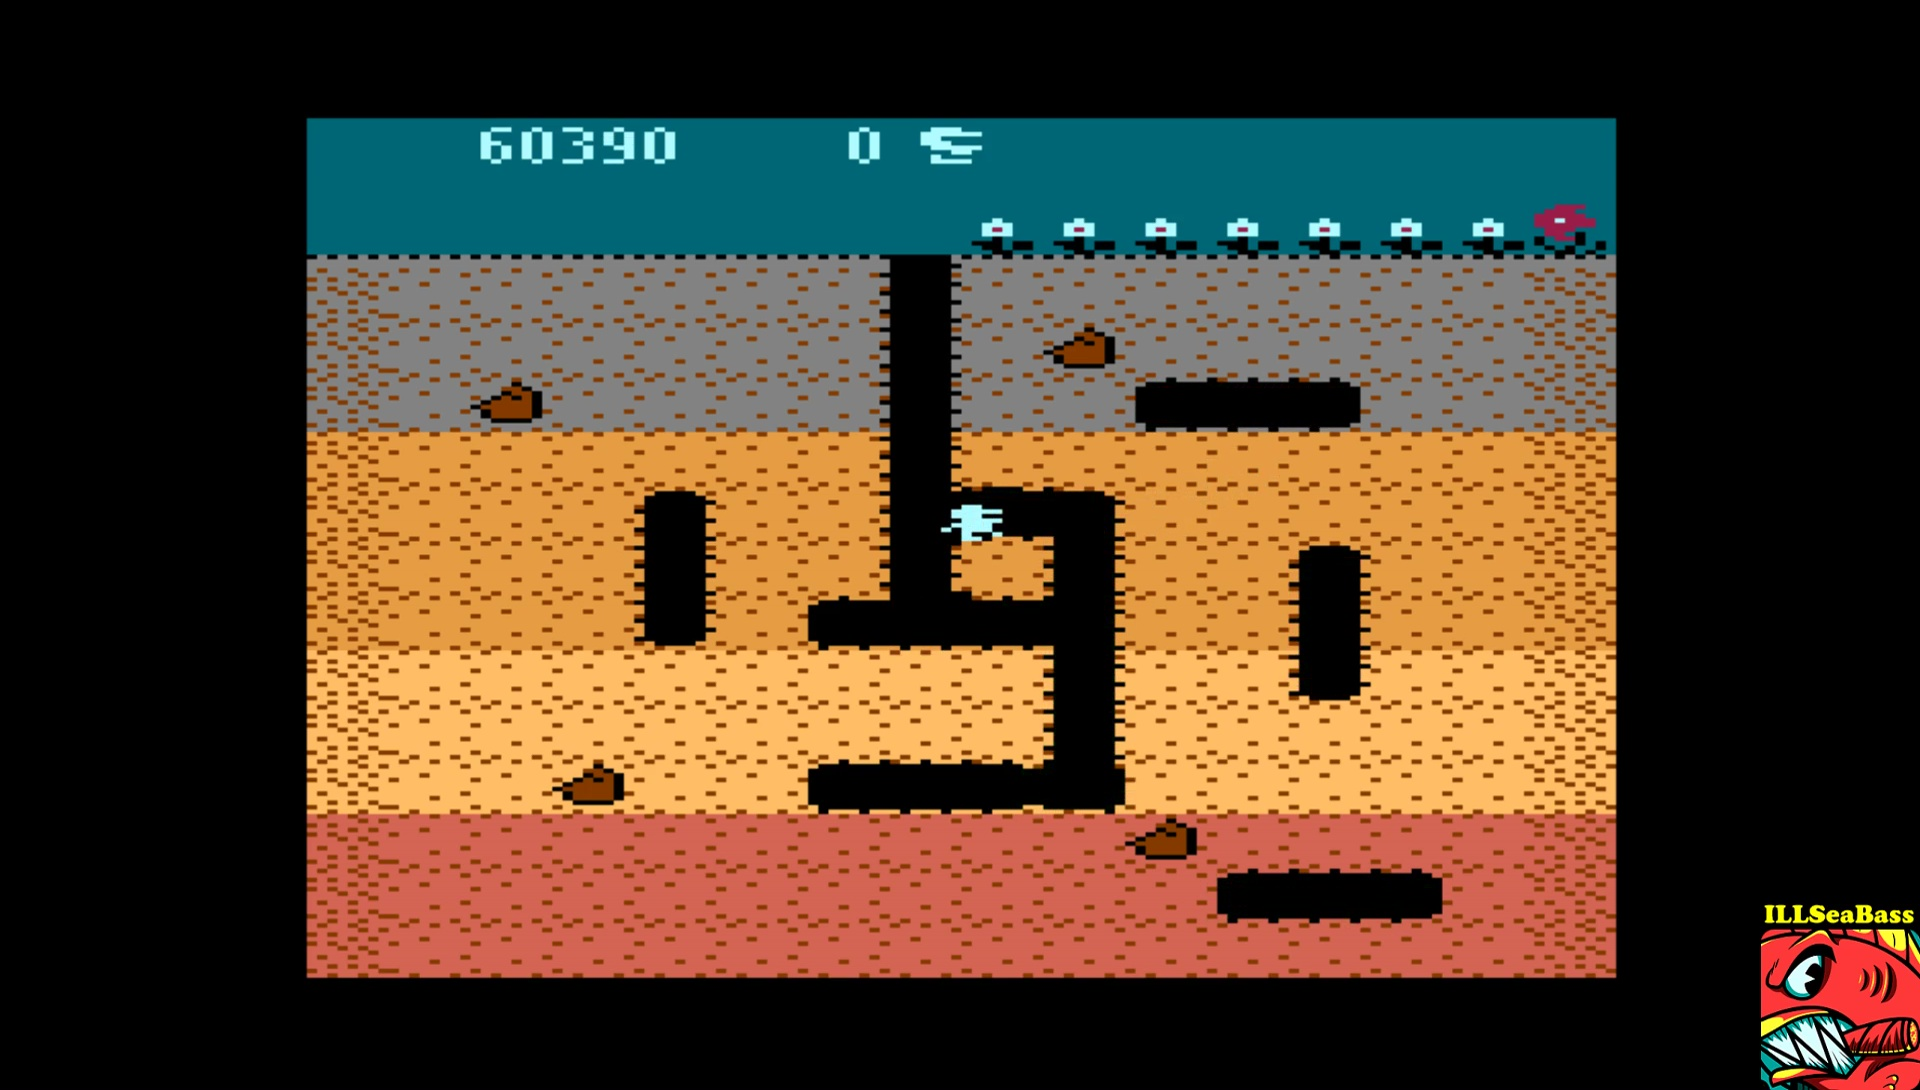 ILLSeaBass: Dig Dug [Turnip Start] (Atari 400/800/XL/XE Emulated) 60,390 points on 2017-06-18 22:53:09